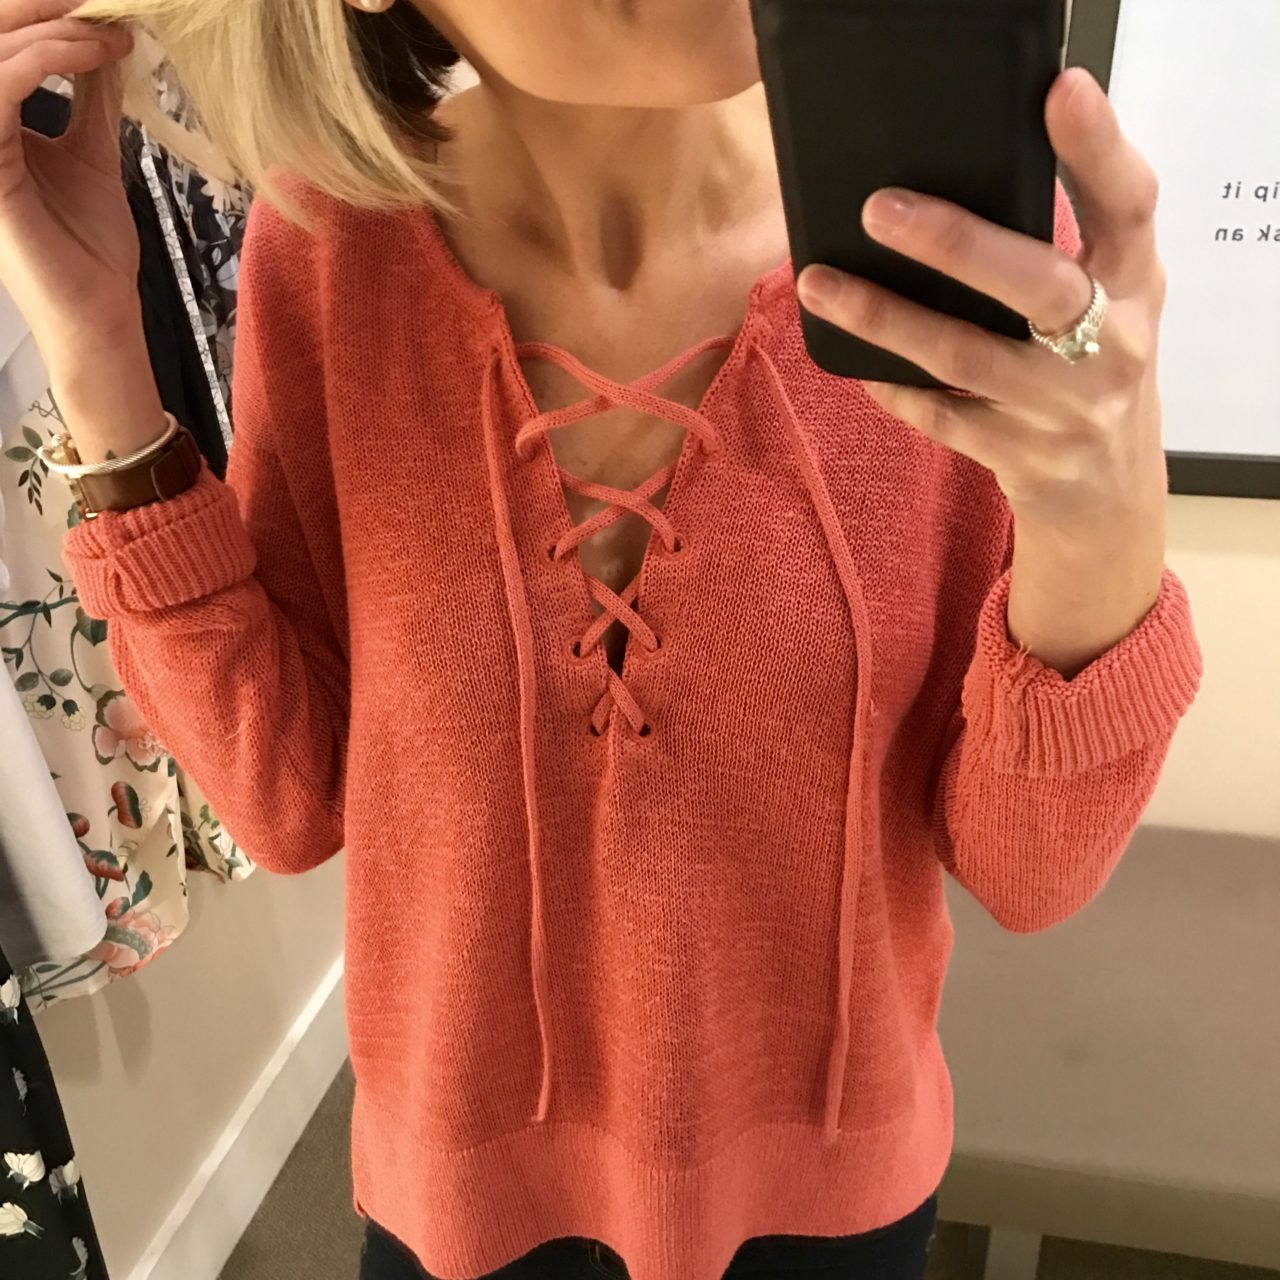 Loft Sale – What I Tried On & Bought